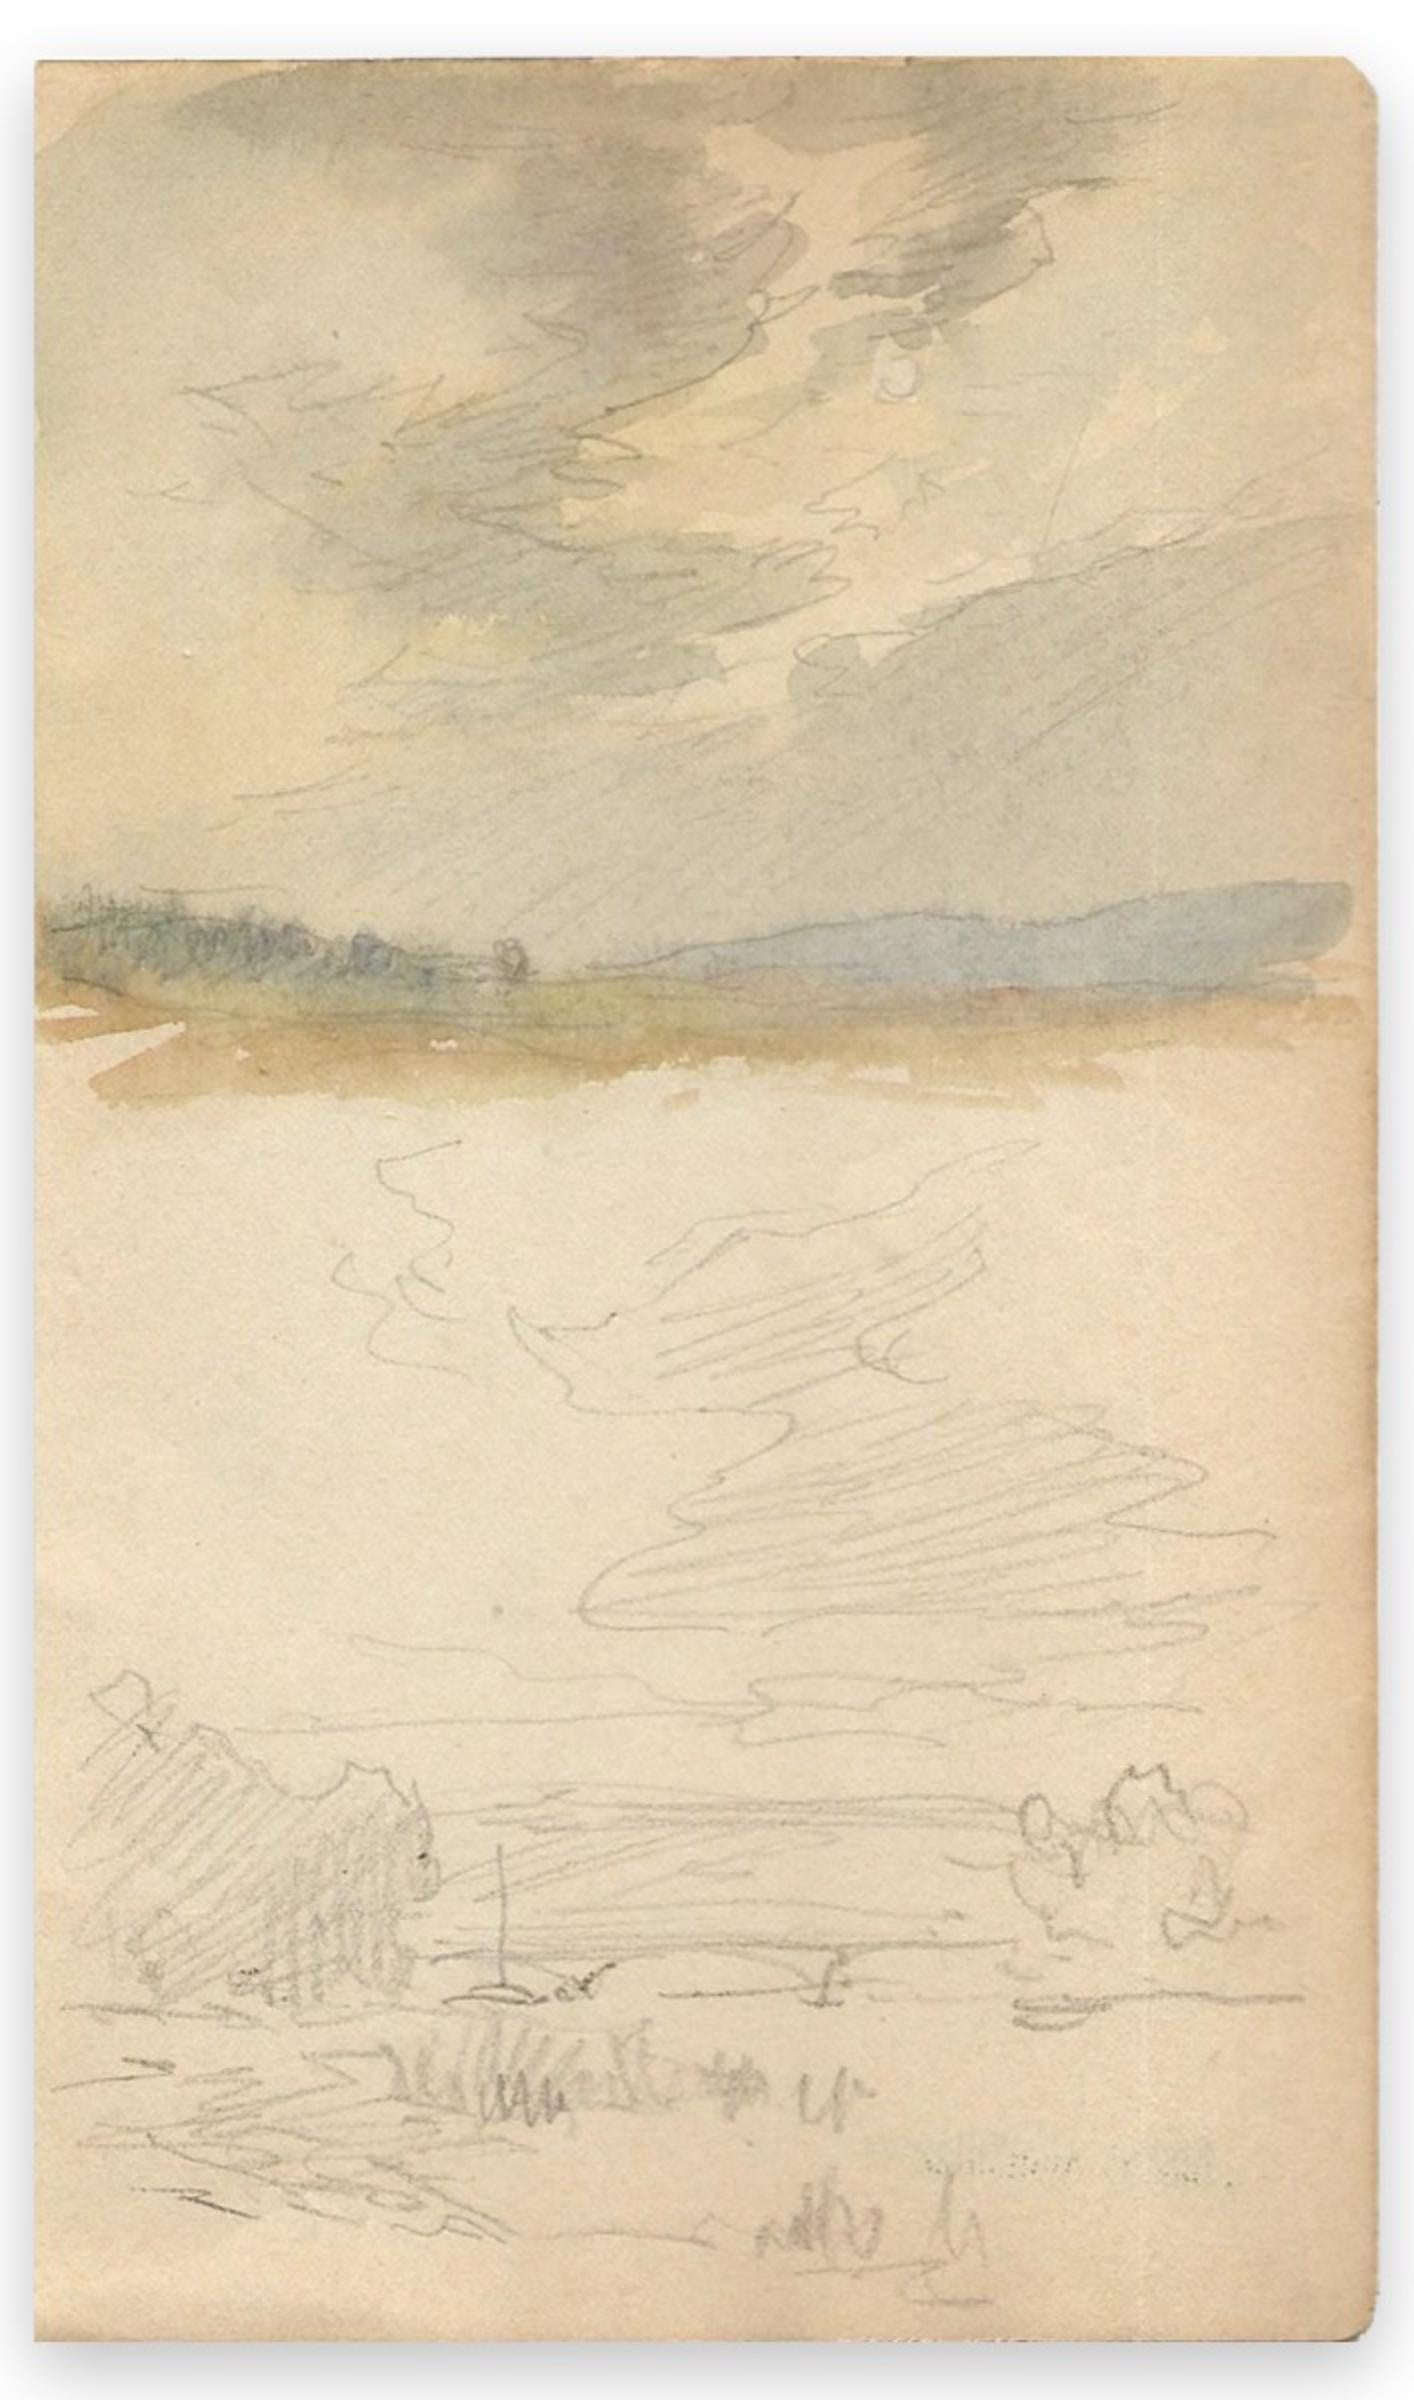 Landscape- Original Watercolor/Graphite by L.-C. Willaume - Early 20th Century